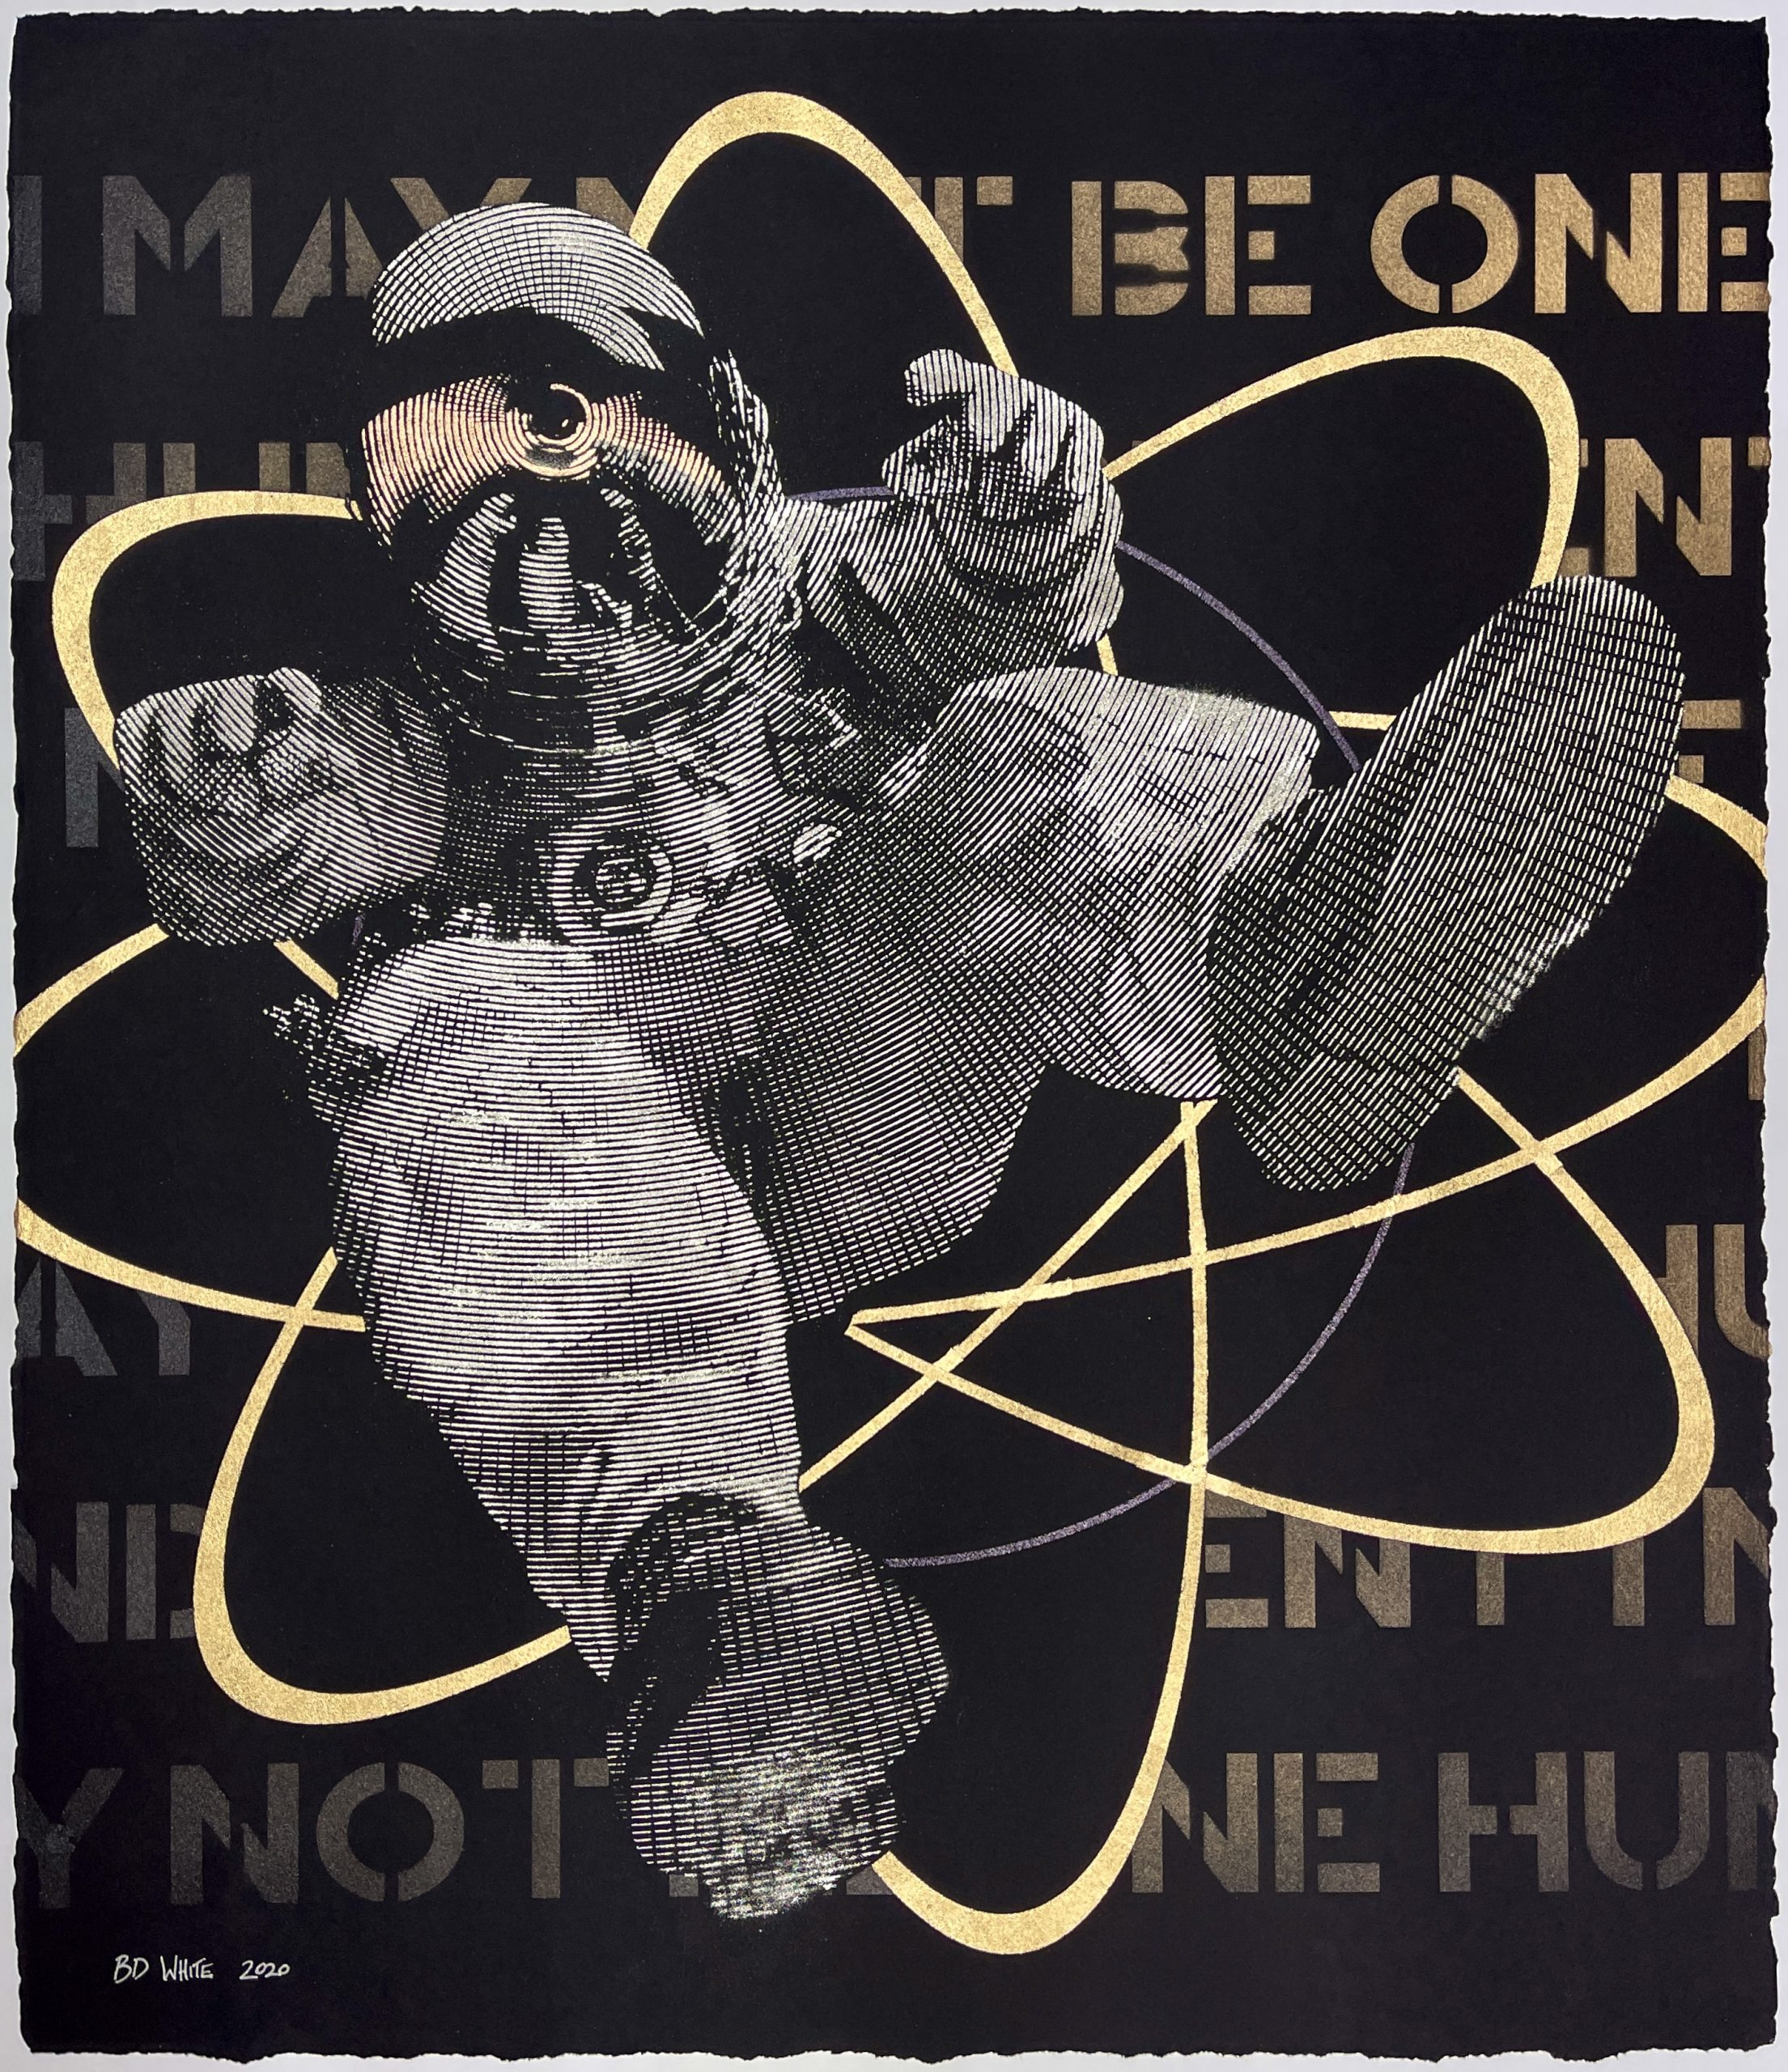 I May Not Be One Hundred Percent (White Gold Leaf Atom) by B.D. White